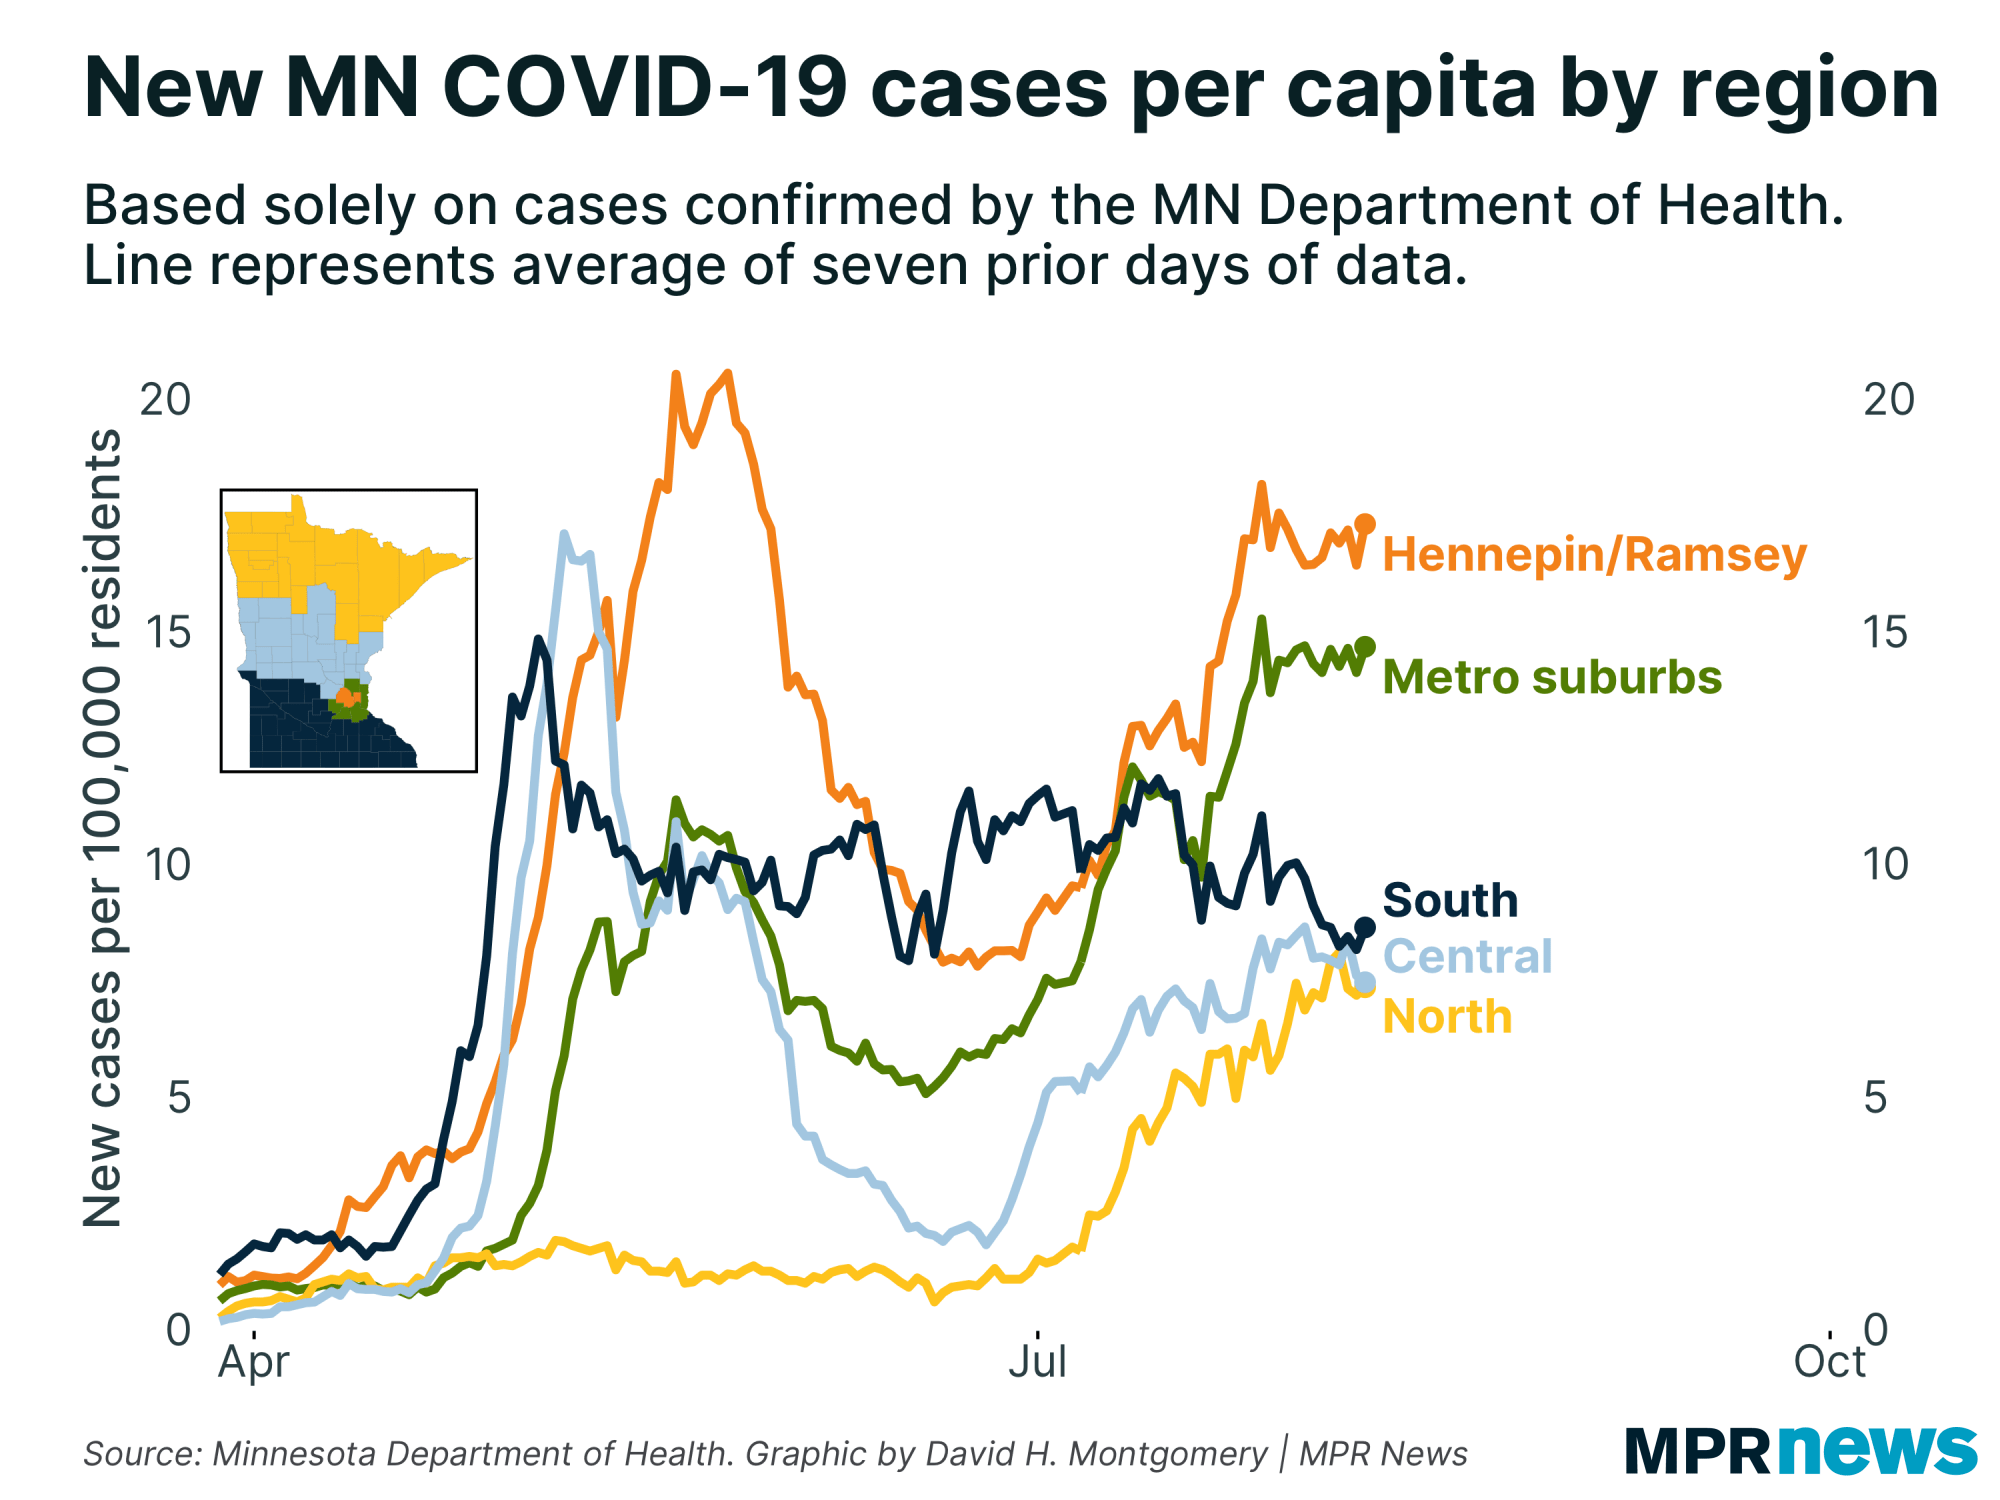 New COVID-19 cases by Minnesota region